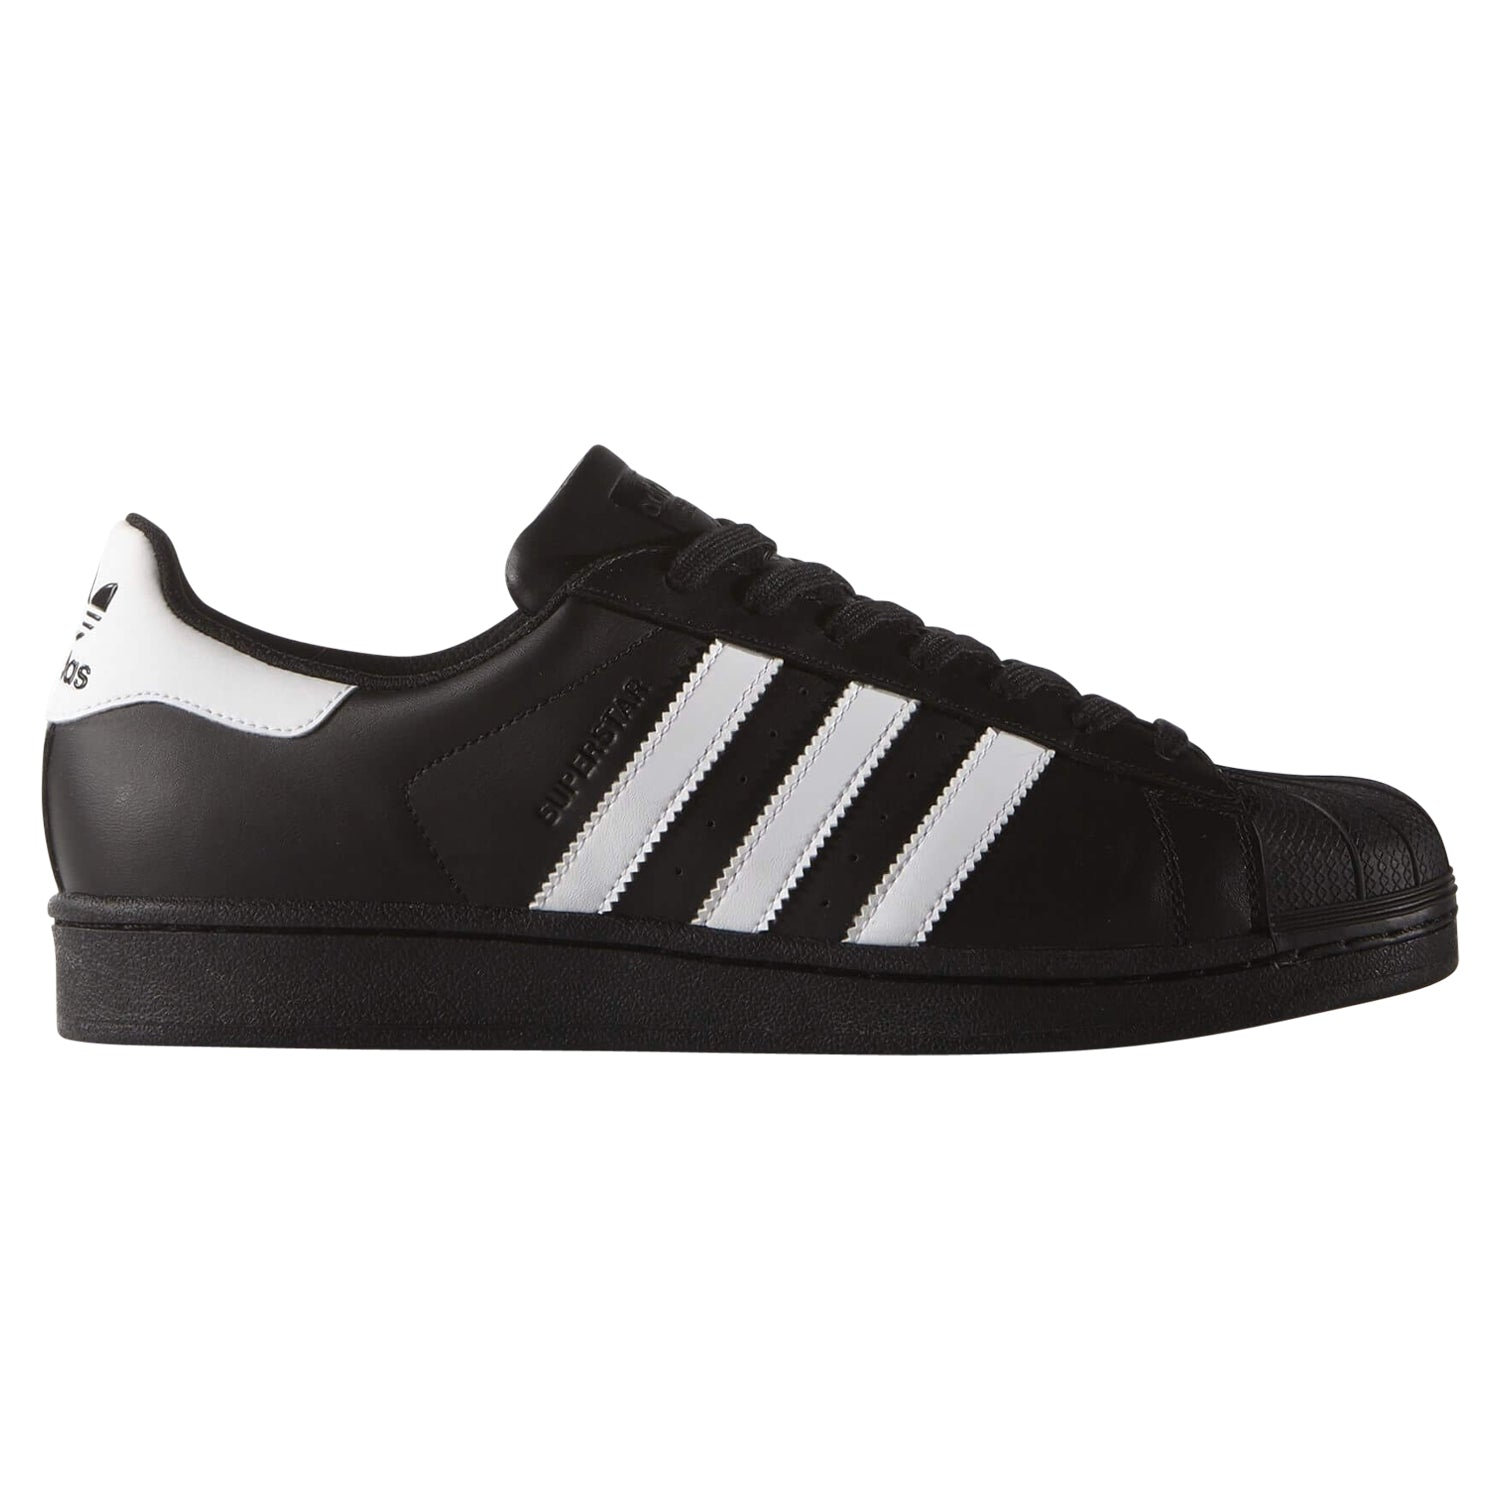 adidas Originals Men's Superstar Trainers BlackWhite